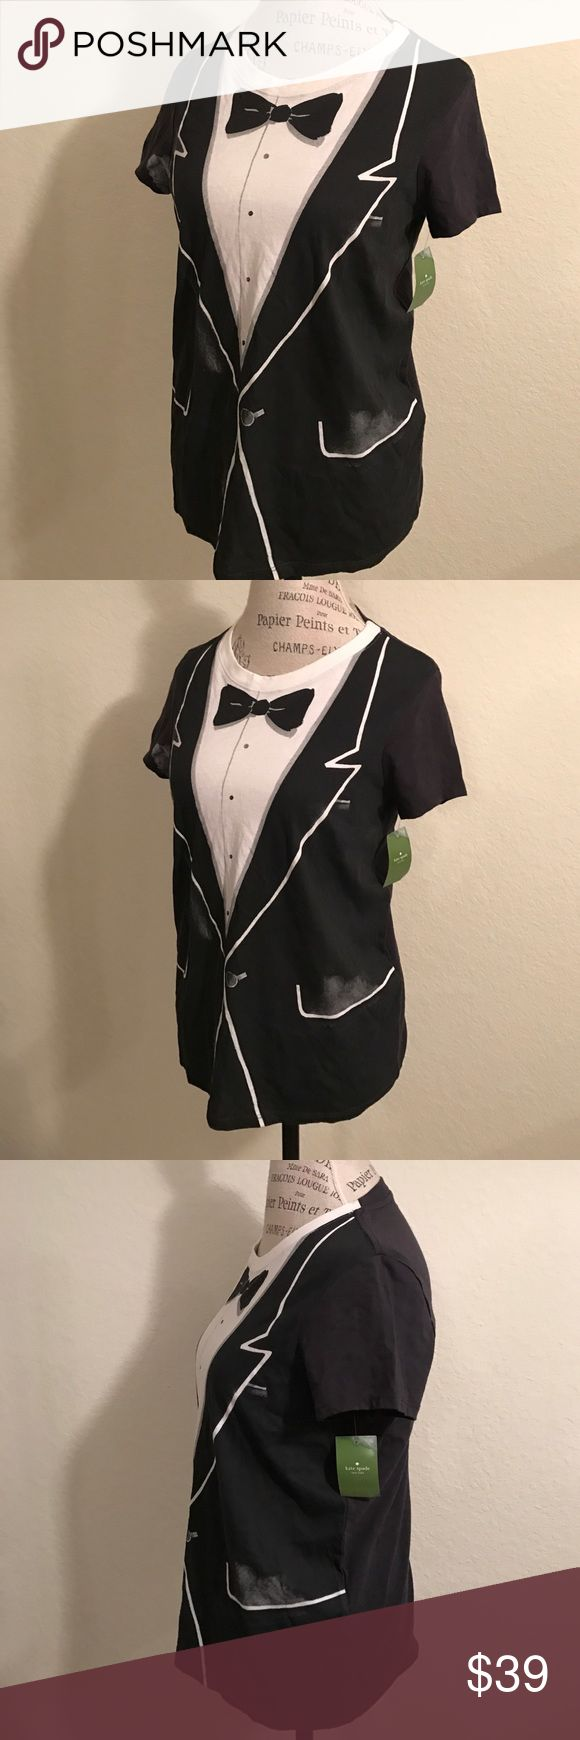 Kate Spade Stylish Tuxedo Top Shirt Tee T-shirt Brand new with tag! Kate Spade Tuxedo Graphic T-Shirt. Style # NJMU2882. Day Disco Black Multi (028). Size Medium. Tag is stained and bent from storage. kate spade Tops Tees - Short Sleeve